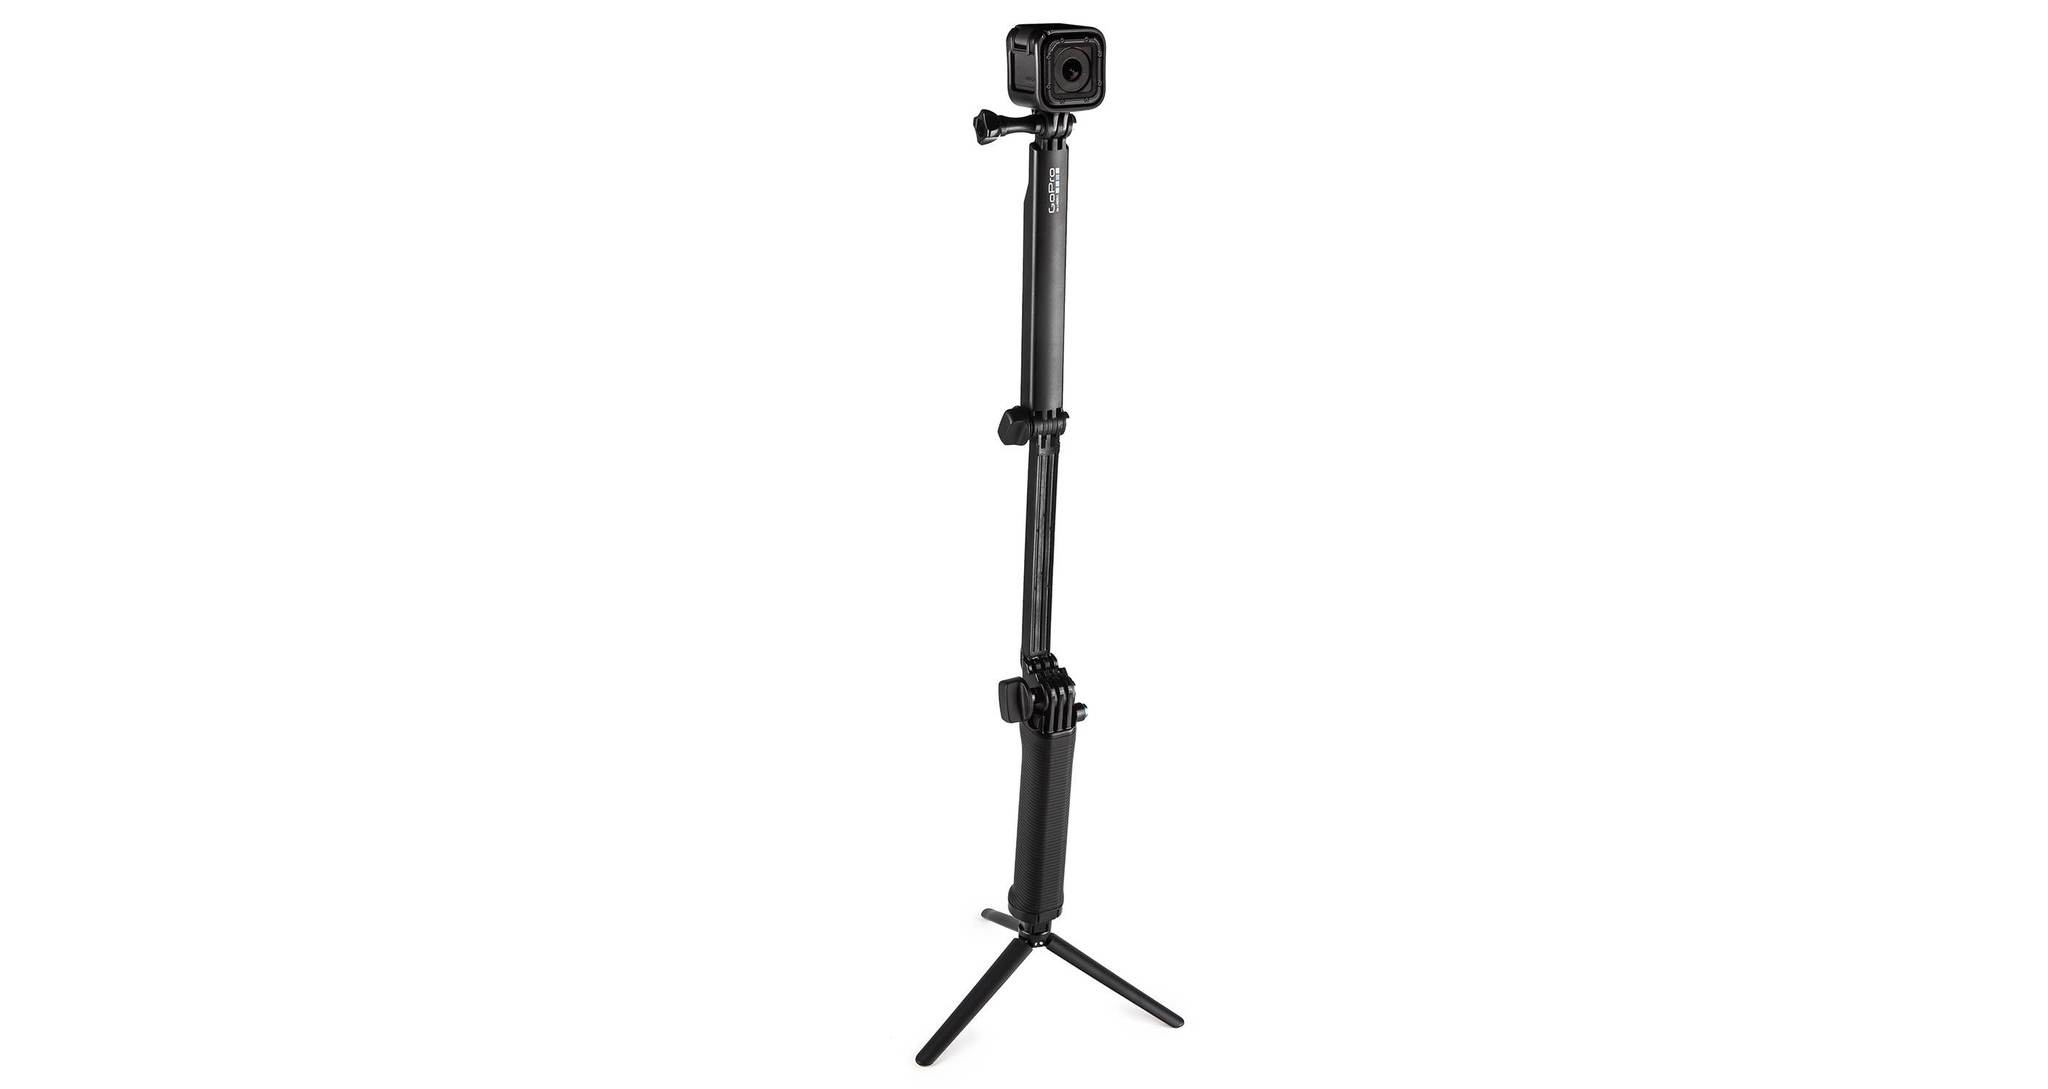 Монопод-штатив GoPro AFAEM-001 3-Way Mount - Grip/Arm/Tripod в рабочей высоте